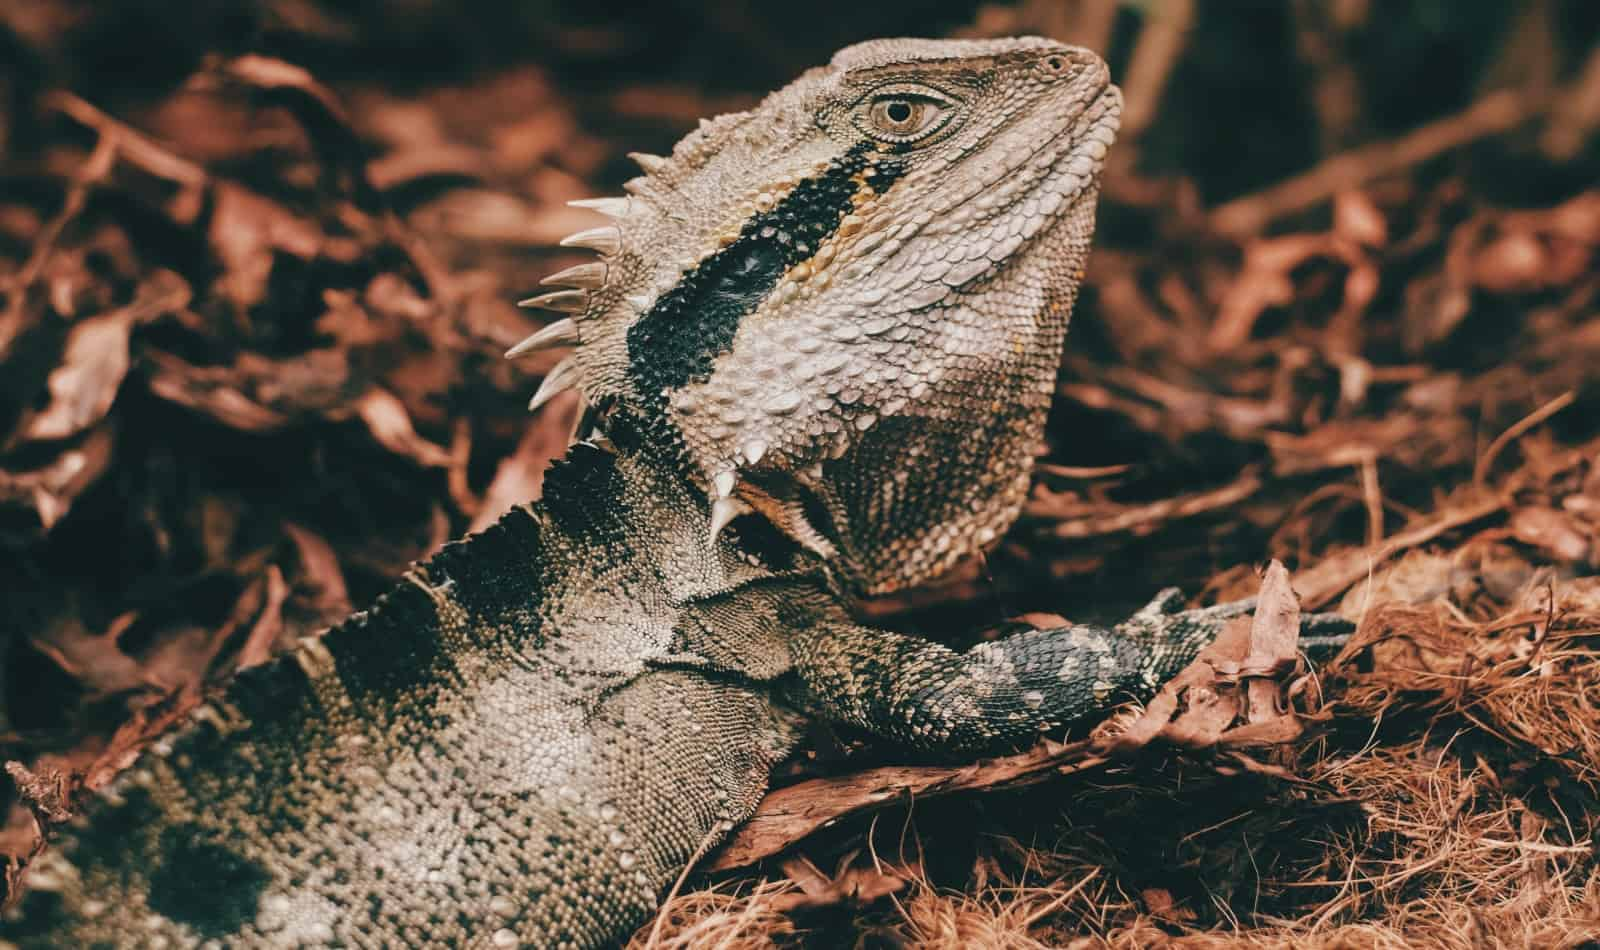 brown and black bearded dragon: can he eat fish?